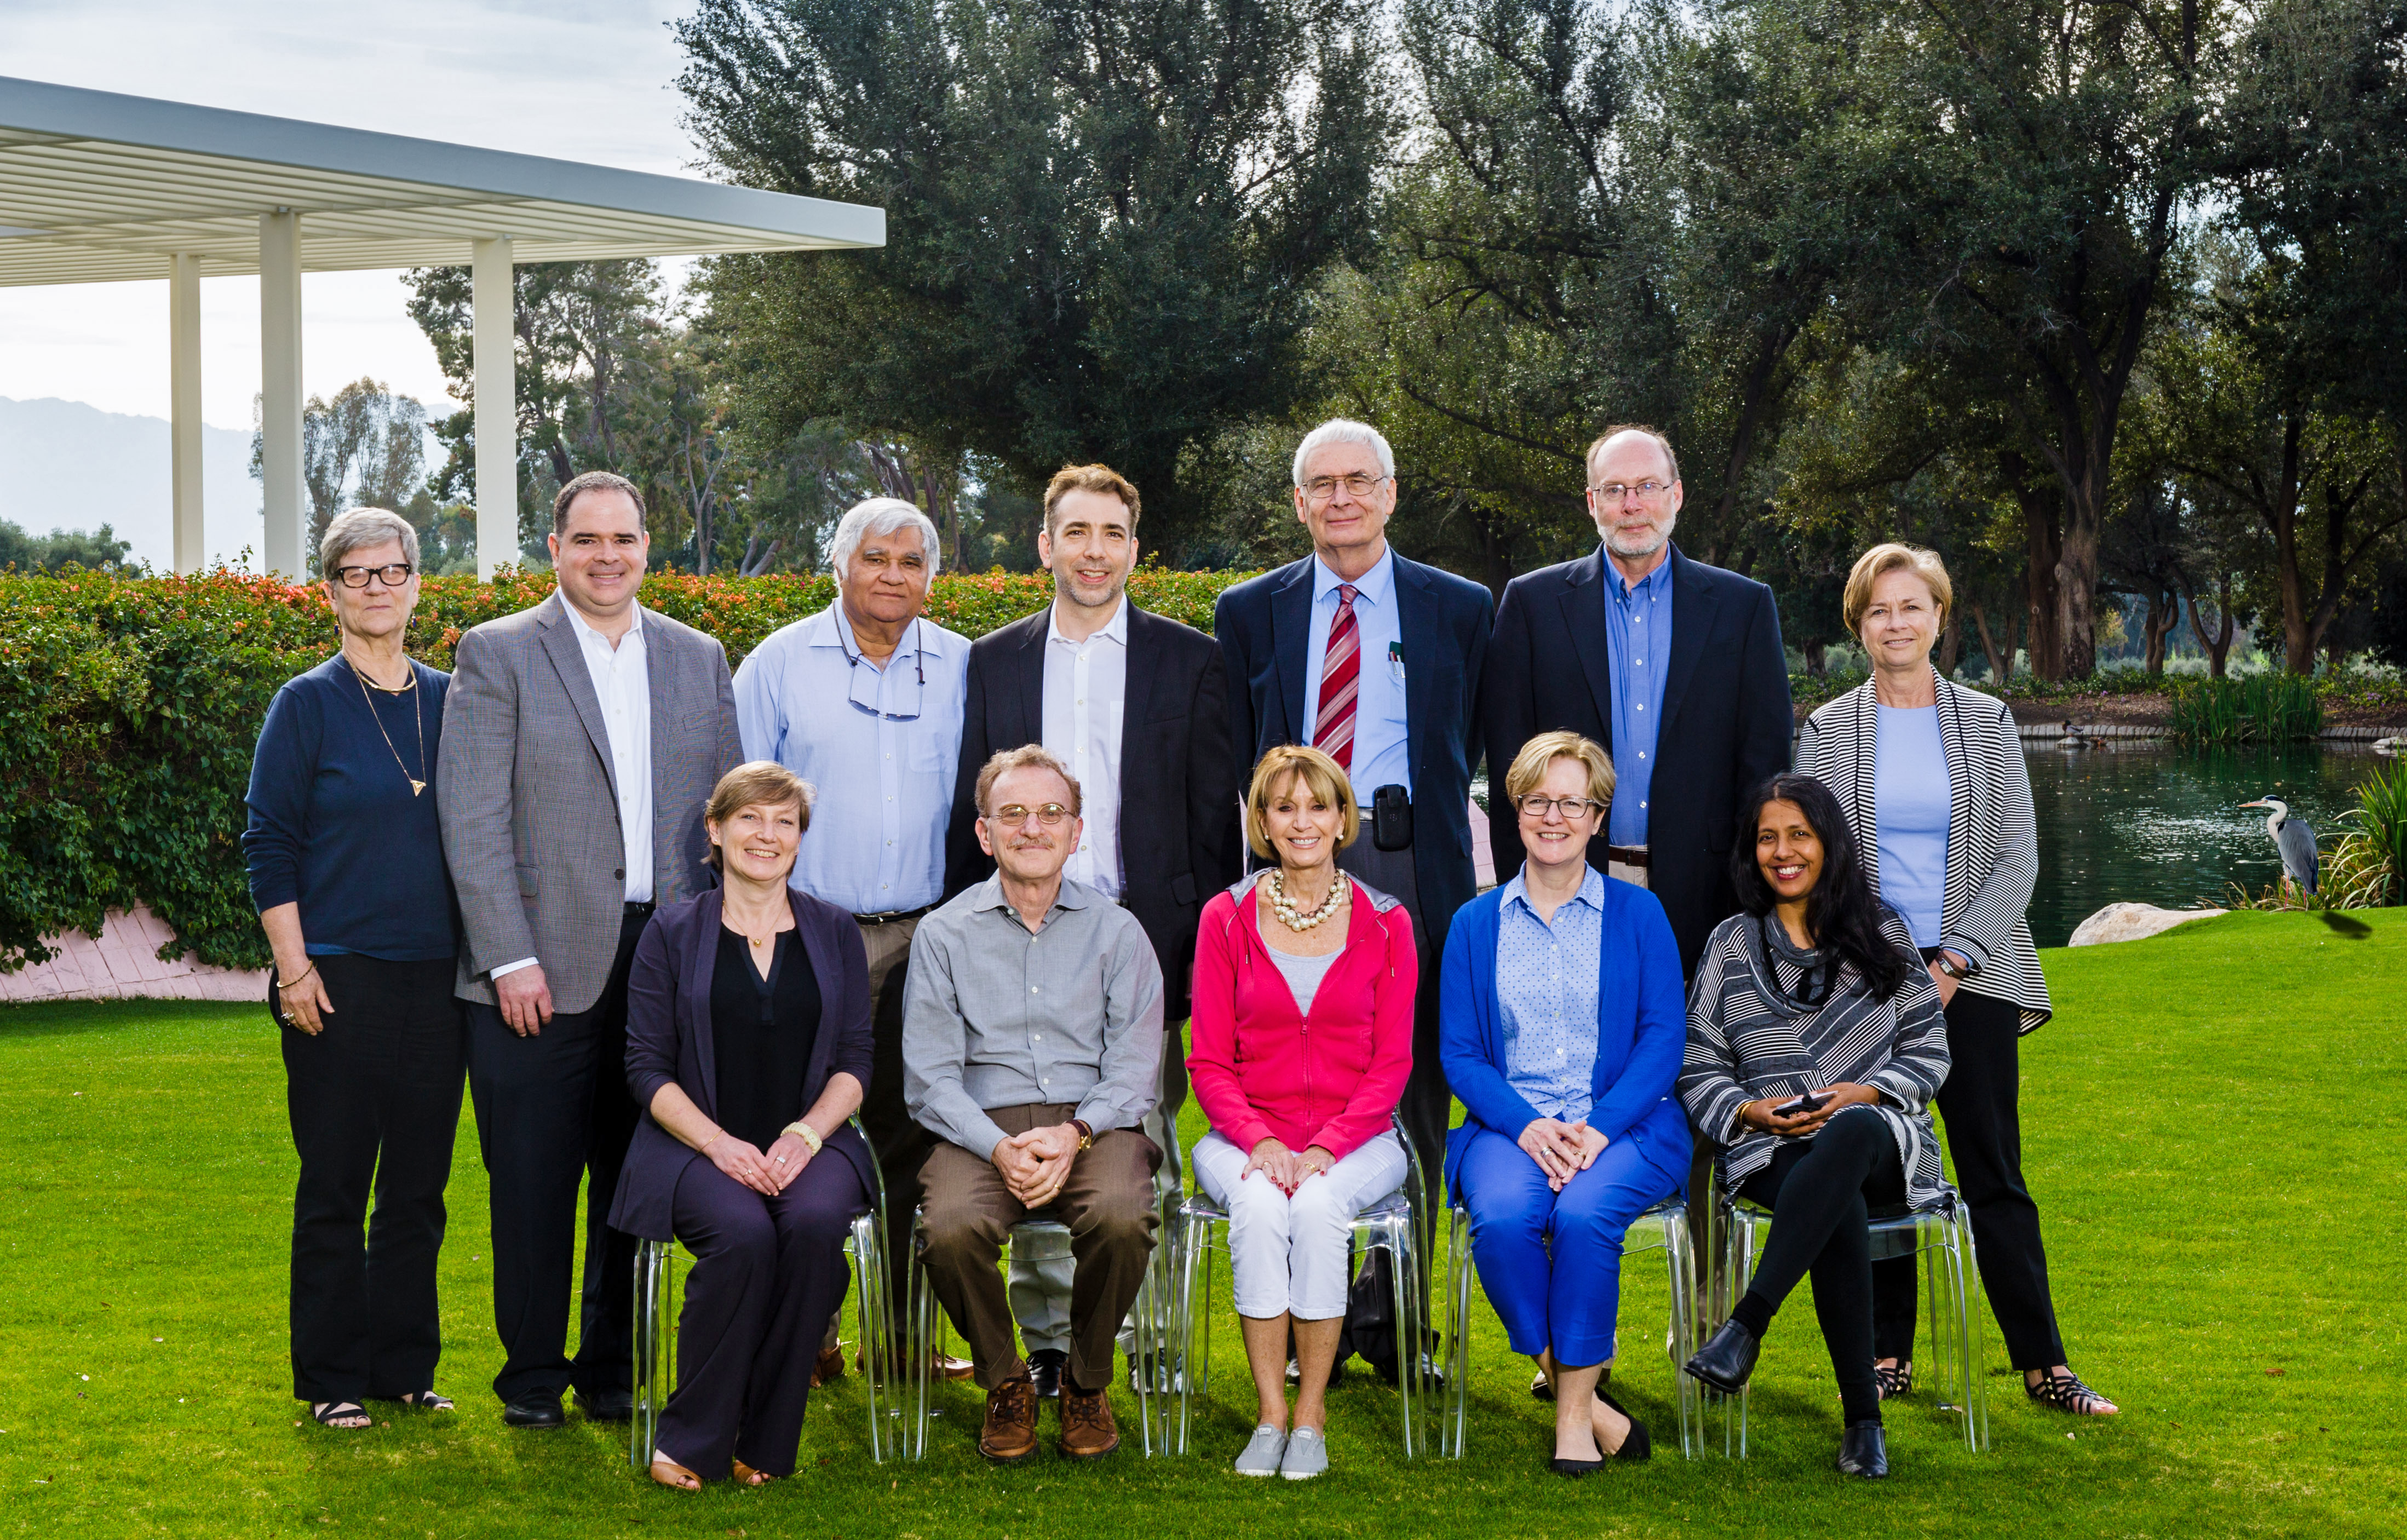 Participants from the February 2017 authorship retreat. Front row (left to right): Véronique Kierner, Randy Sheckman, Marcia McNutt, Monica Bradford, and Sowmya Swaminathan. Back row (left to right): Kathleen Hall Jamieson, Bob Howard, Inder Verma, Michael Magoulias, Peter Stang, Brooks Hanson, and Barbara Kline Pope. Credit: The Annenberg Foundation Trust at Sunnylands.